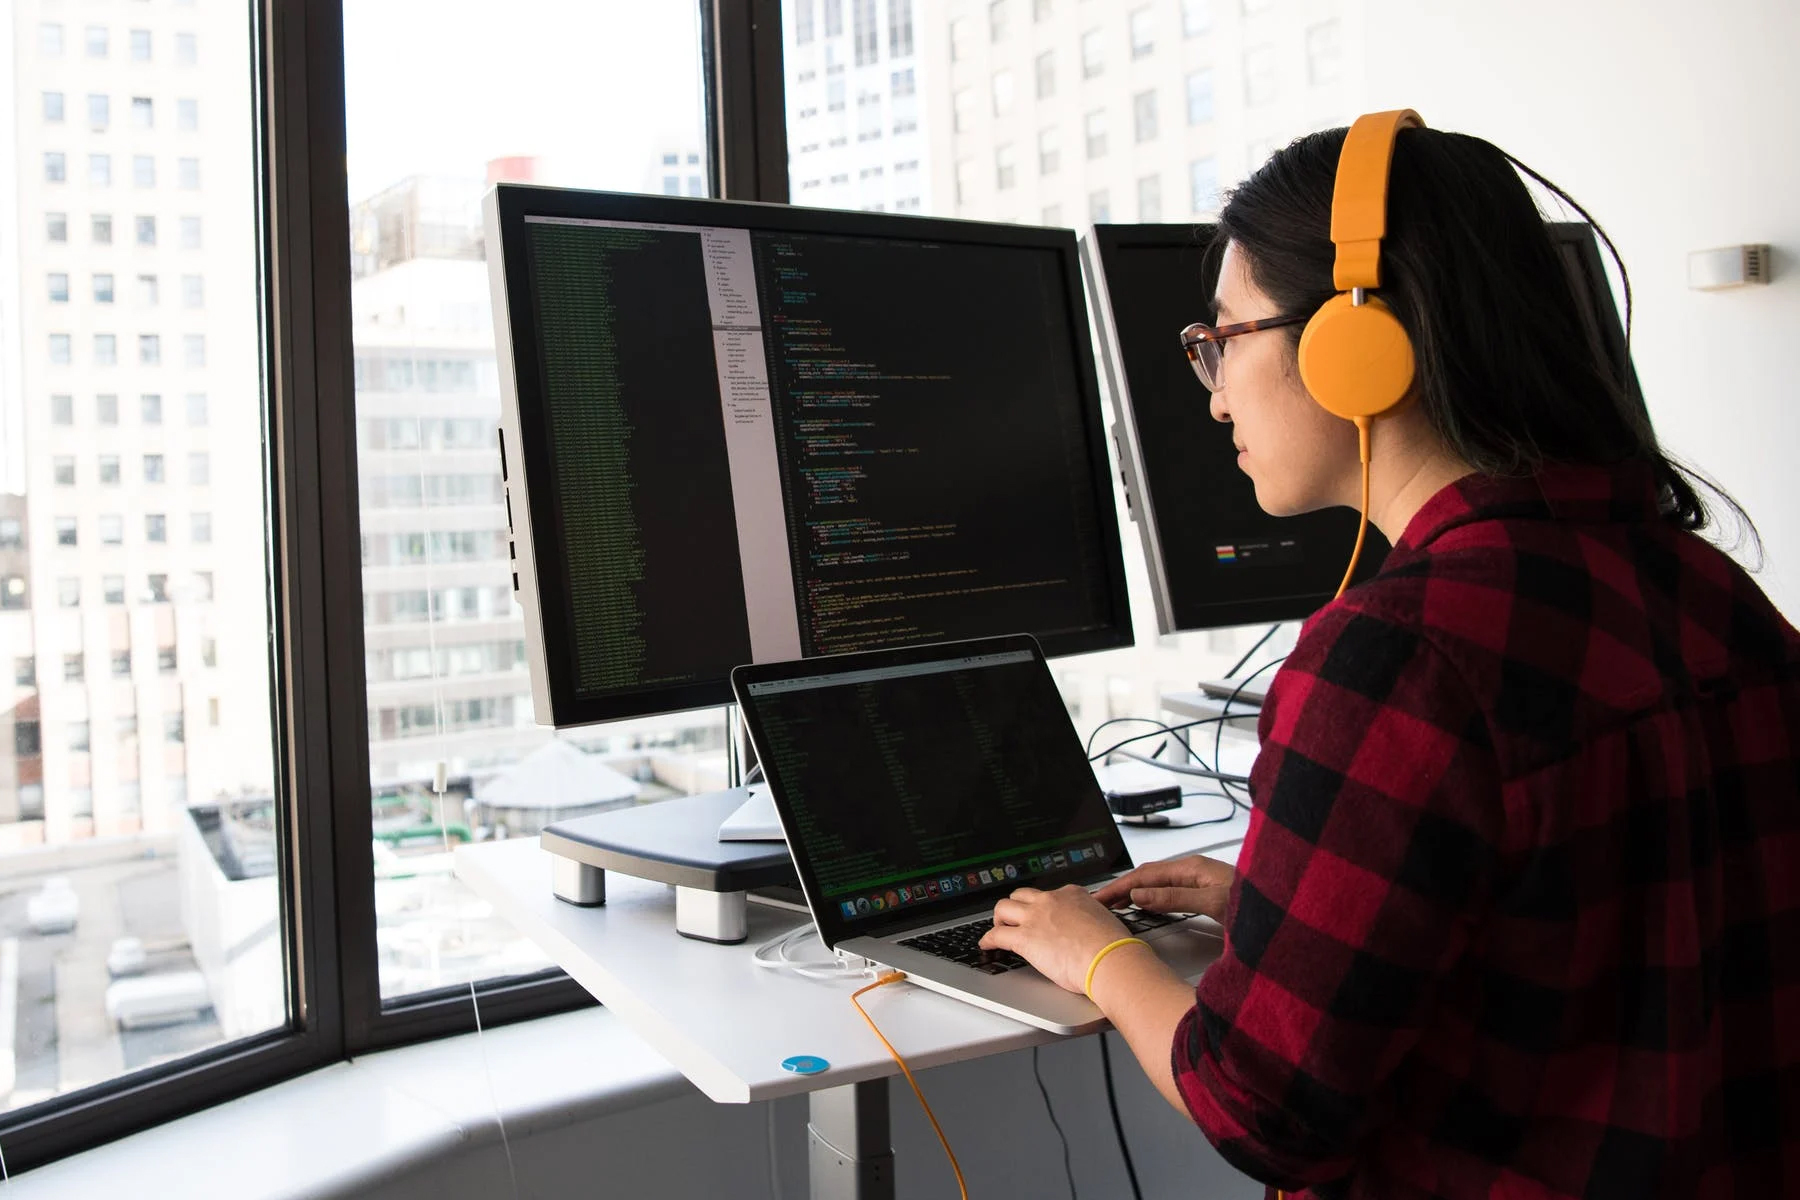 female employee coding on laptop and screens